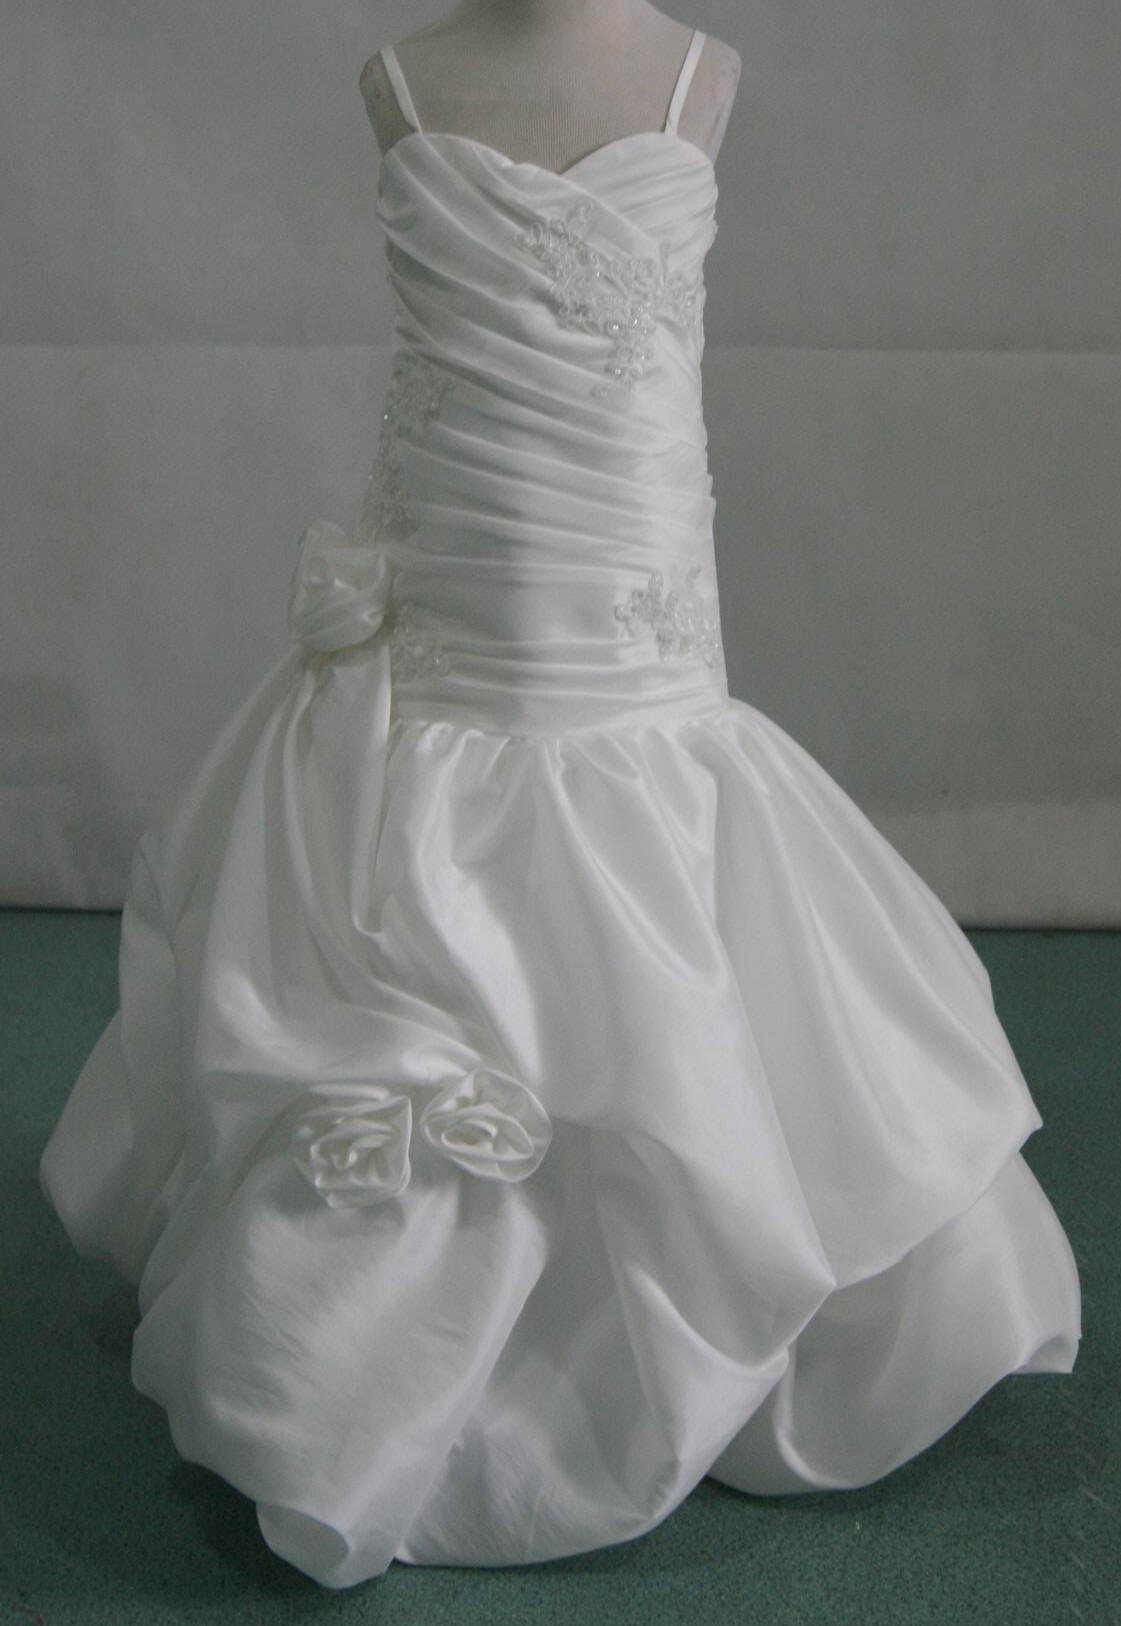 Matching miniature bride wedding dresses